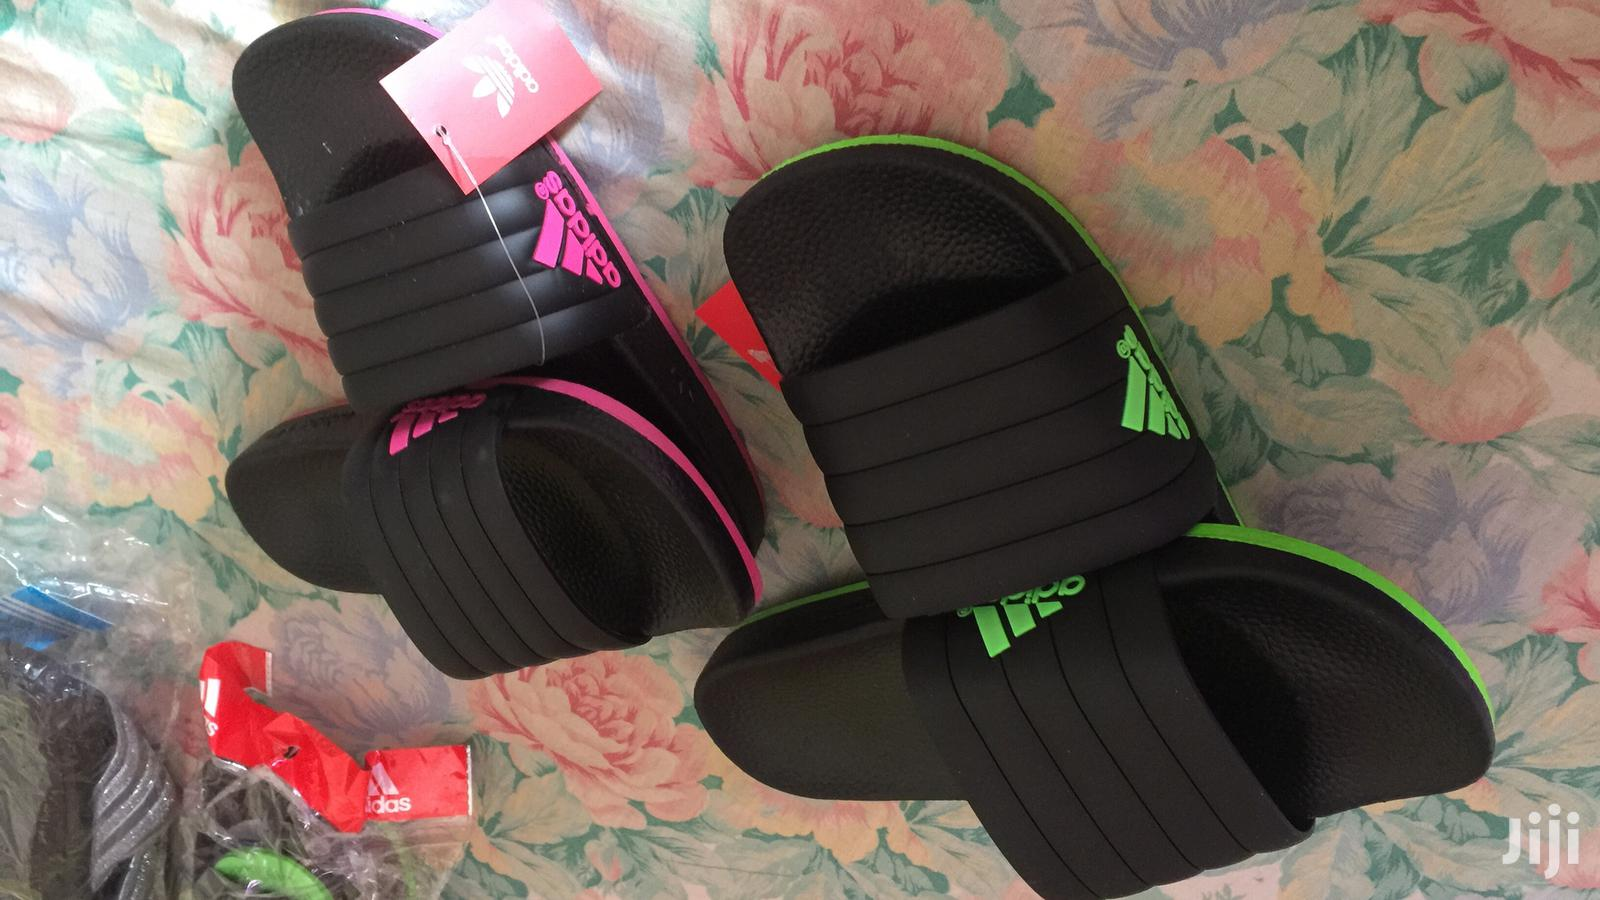 Slidders For Men And Women | Shoes for sale in Dansoman, Greater Accra, Ghana